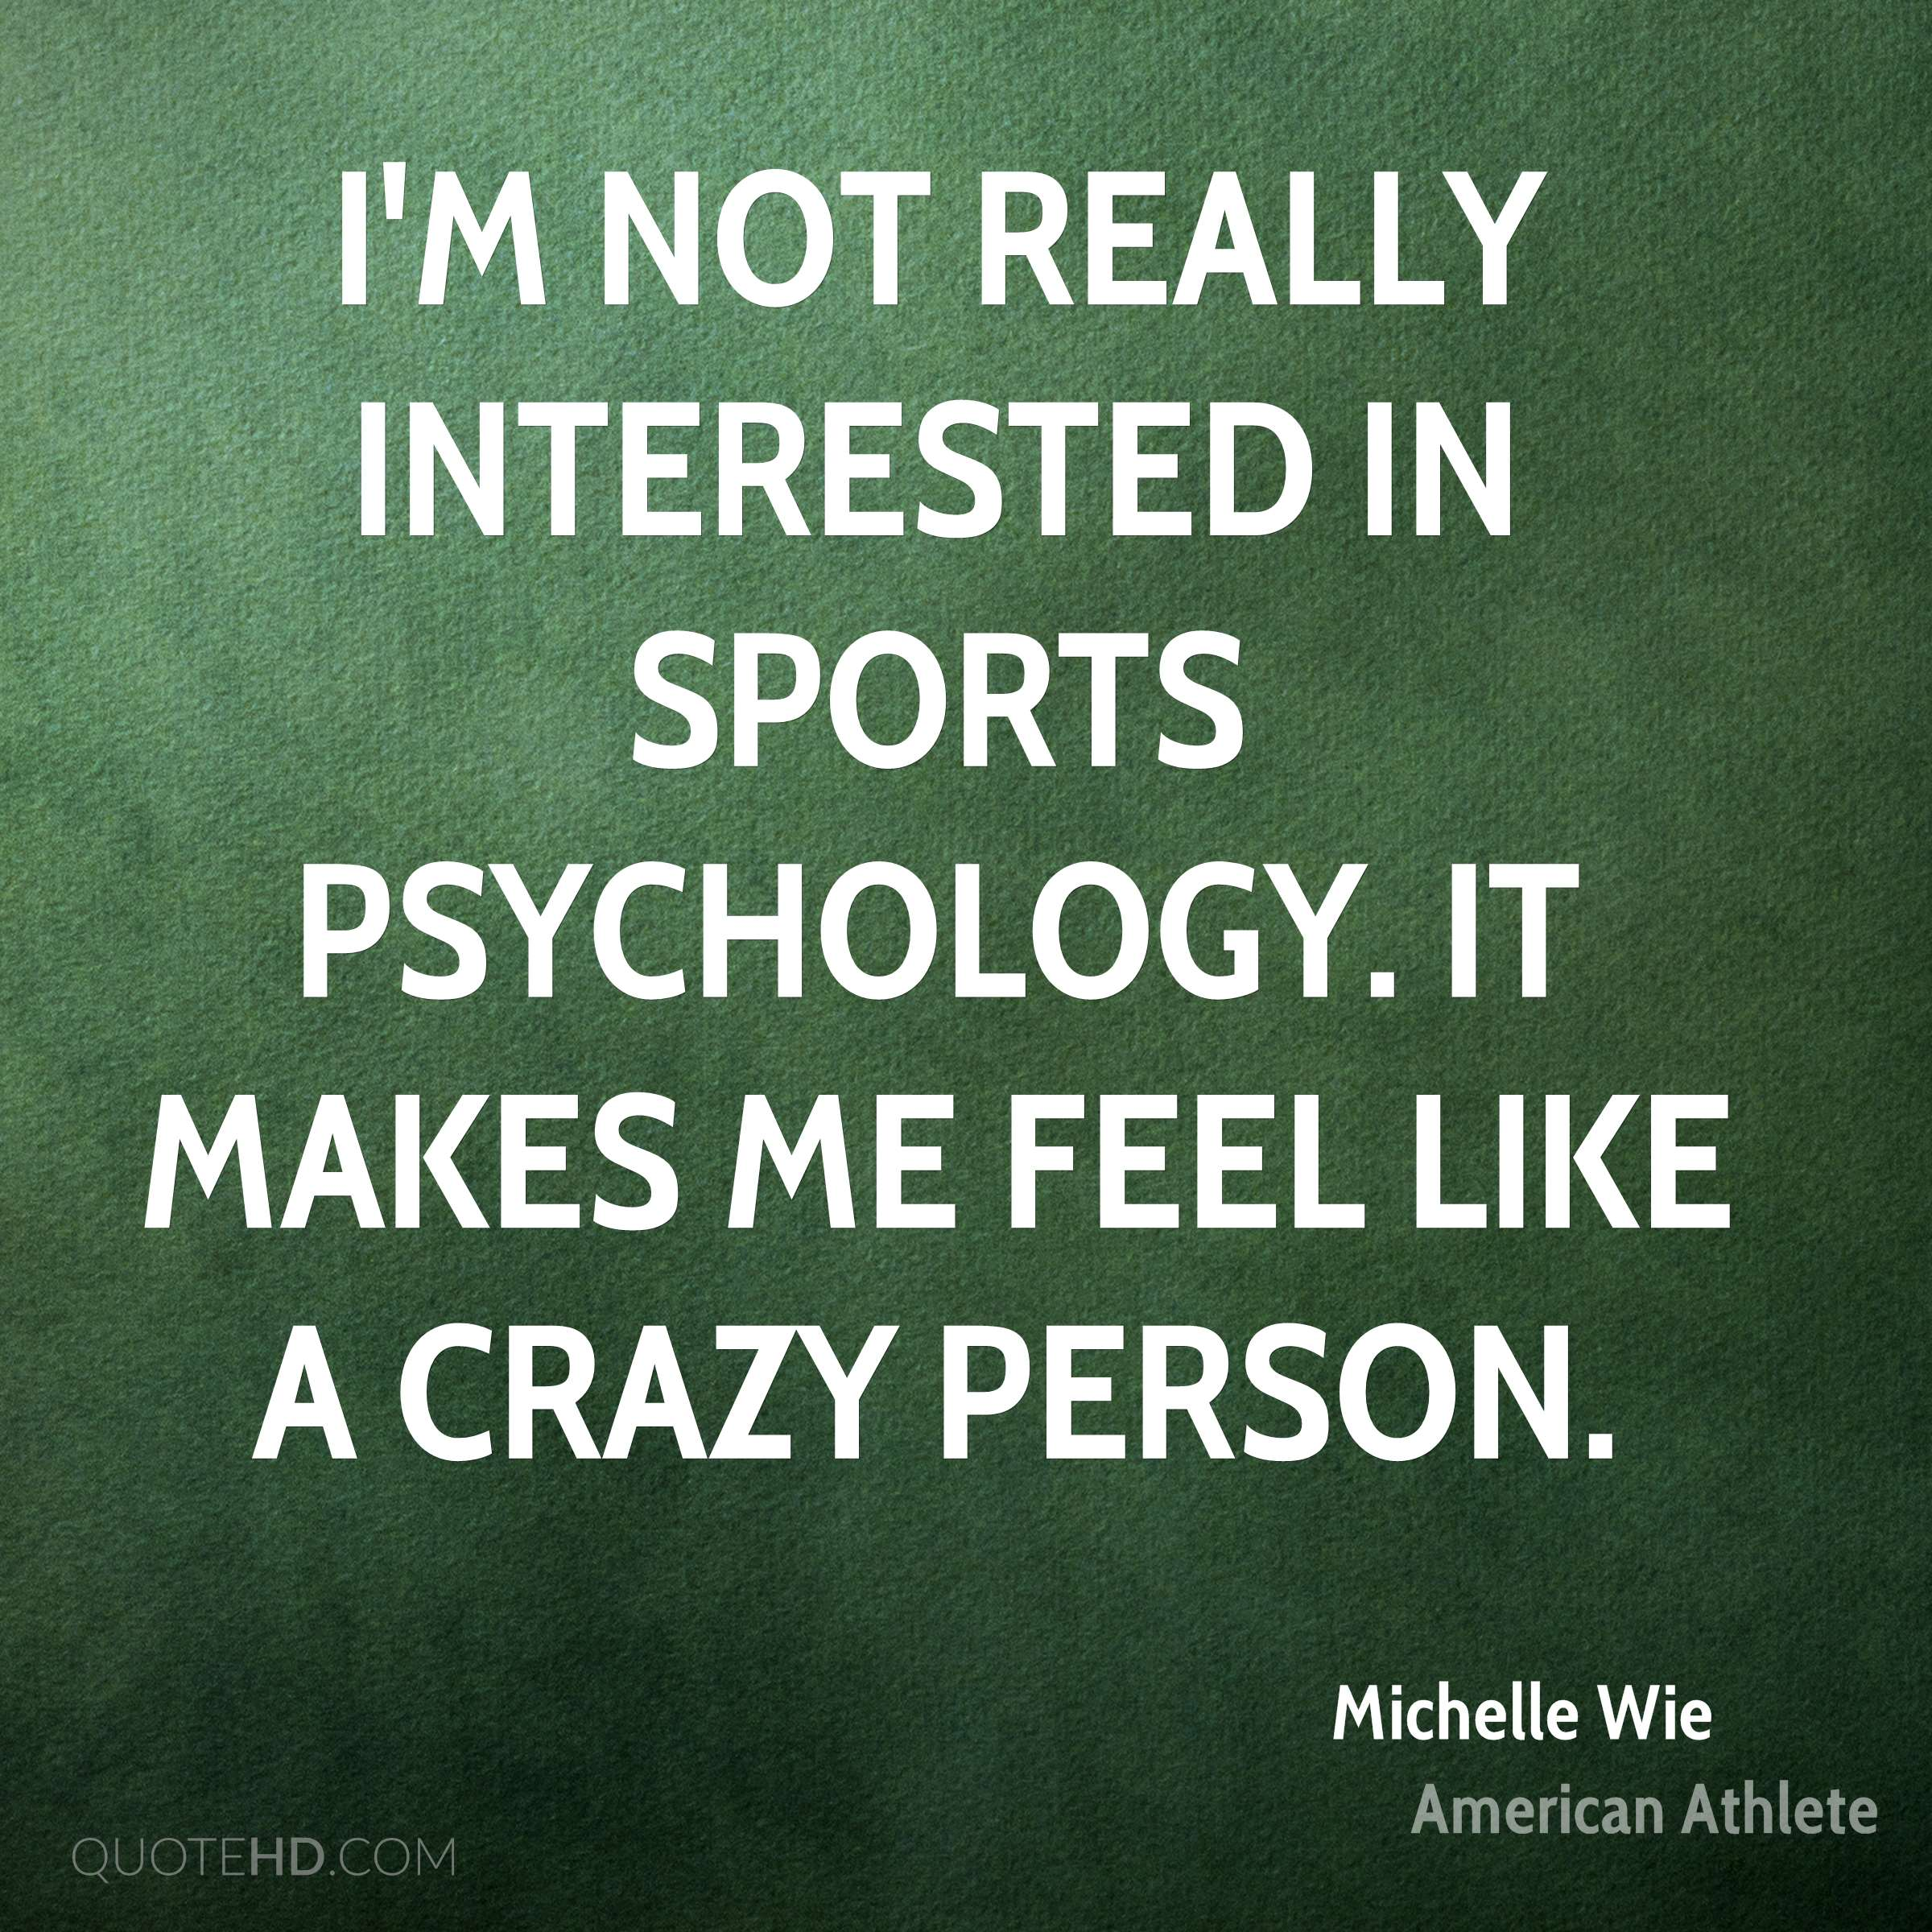 I'm not really interested in sports psychology. It makes me feel like a crazy person.